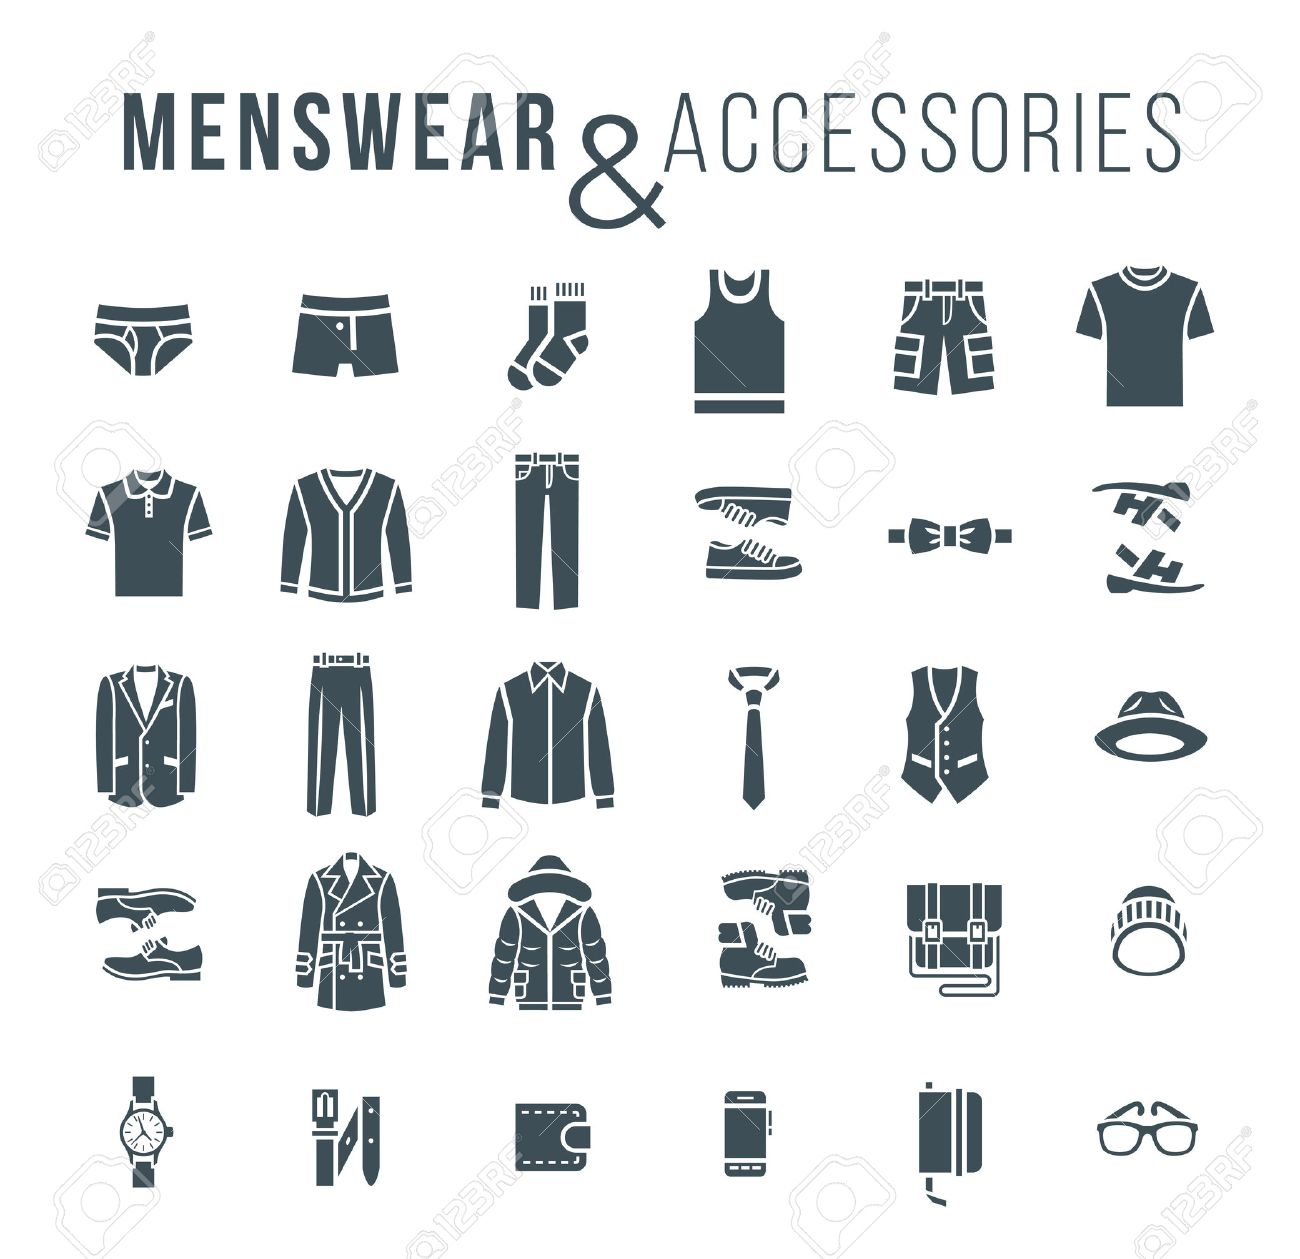 e55bdca2407 Men fashion clothing and accessories flat outline vector icons silhouettes  objects of male outfit clothes jpg